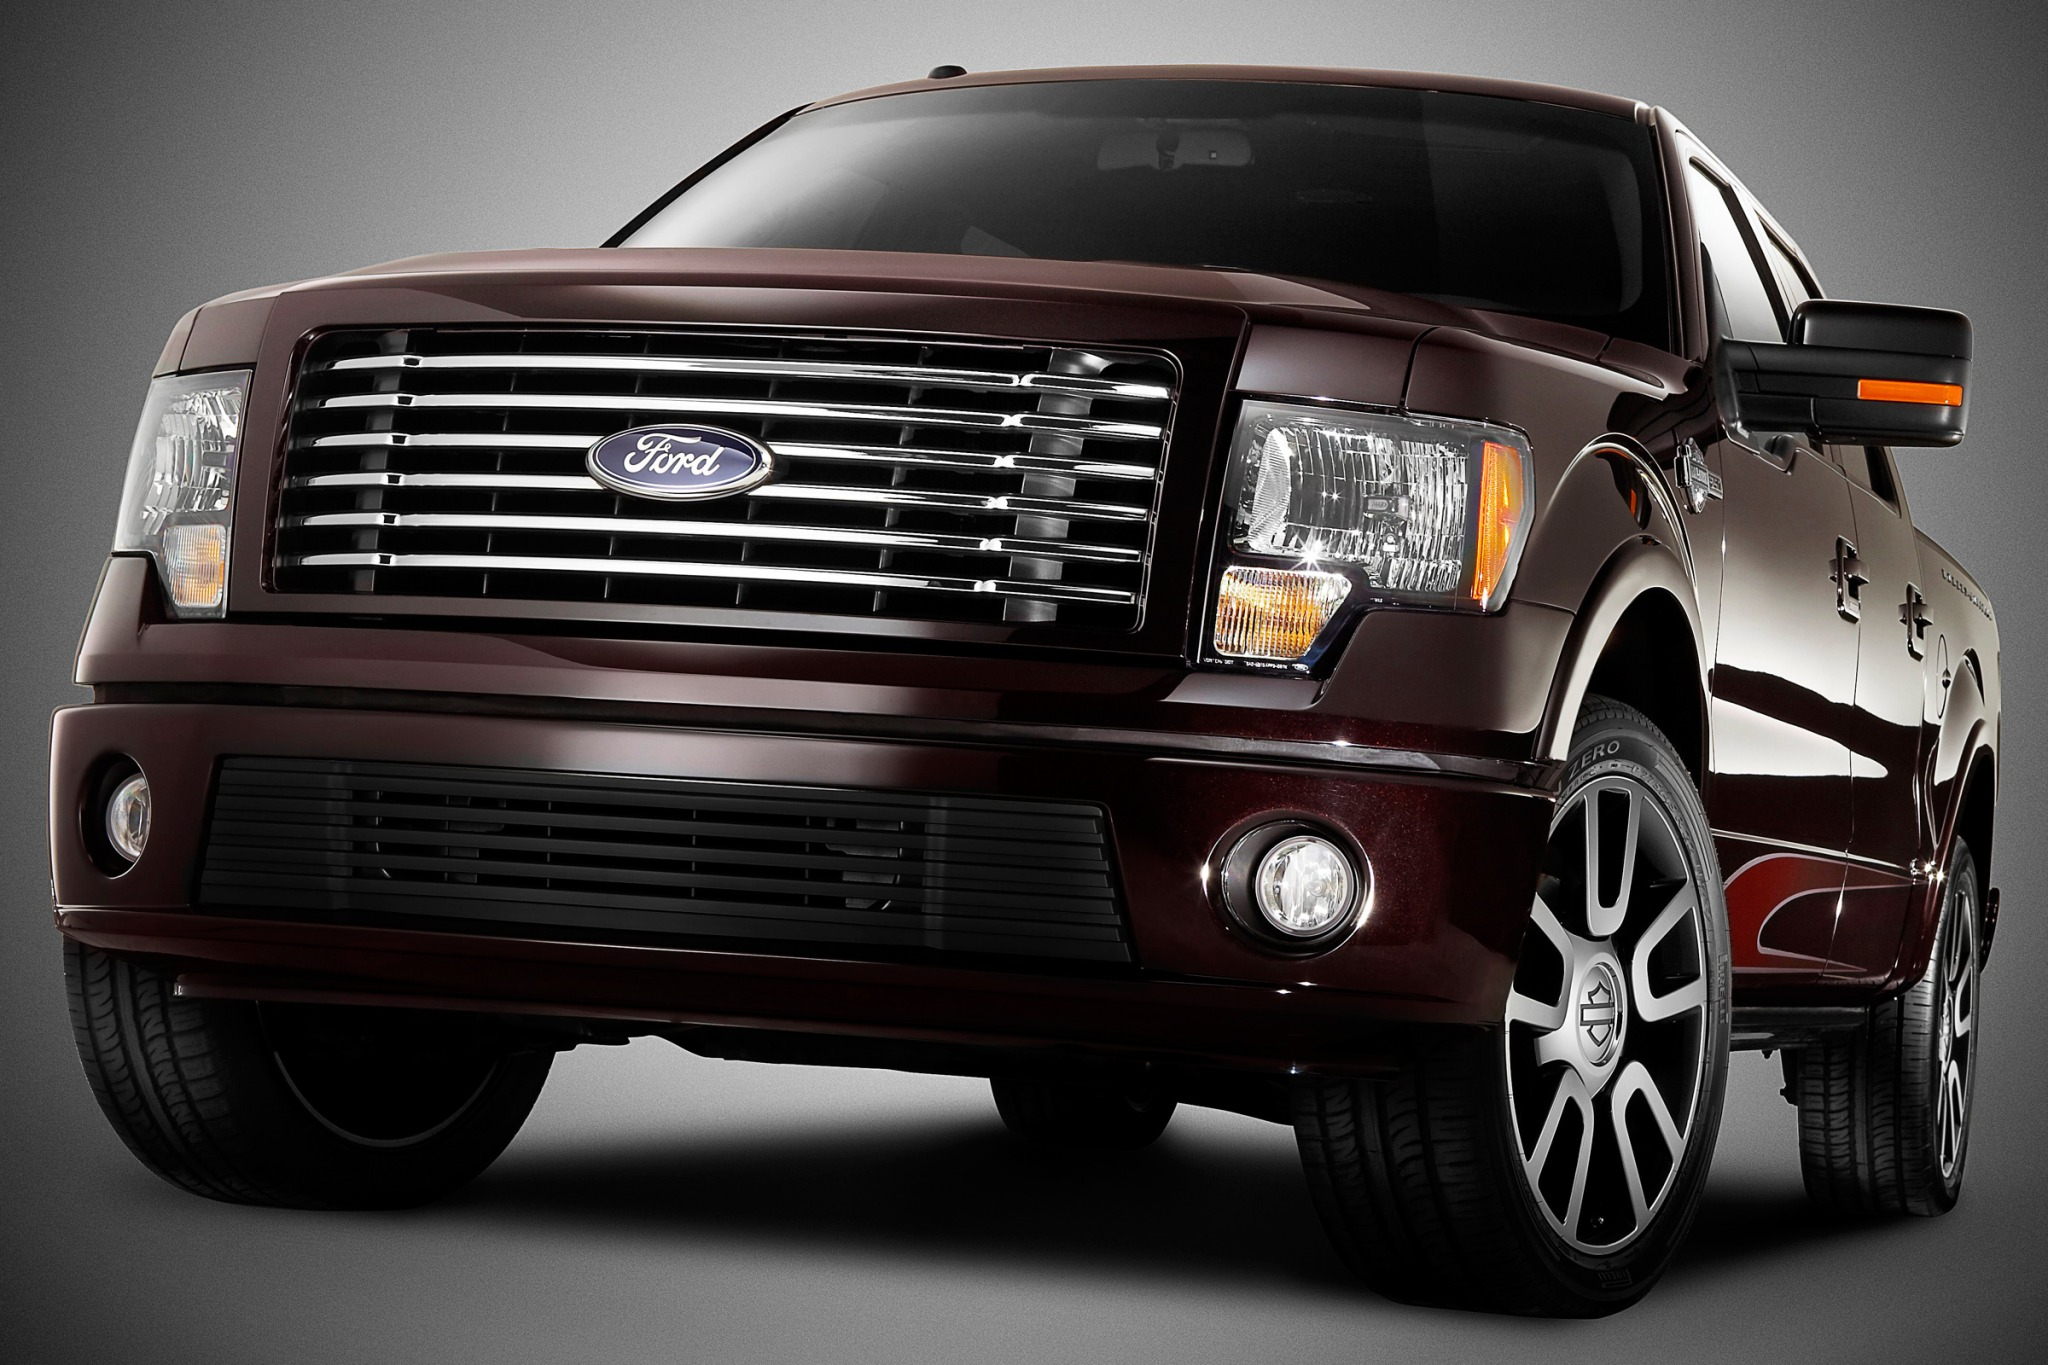 2010 Ford F 150 Information And Photos Zombiedrive 2004 Harley Davidson Xlt Crew Exterior 2